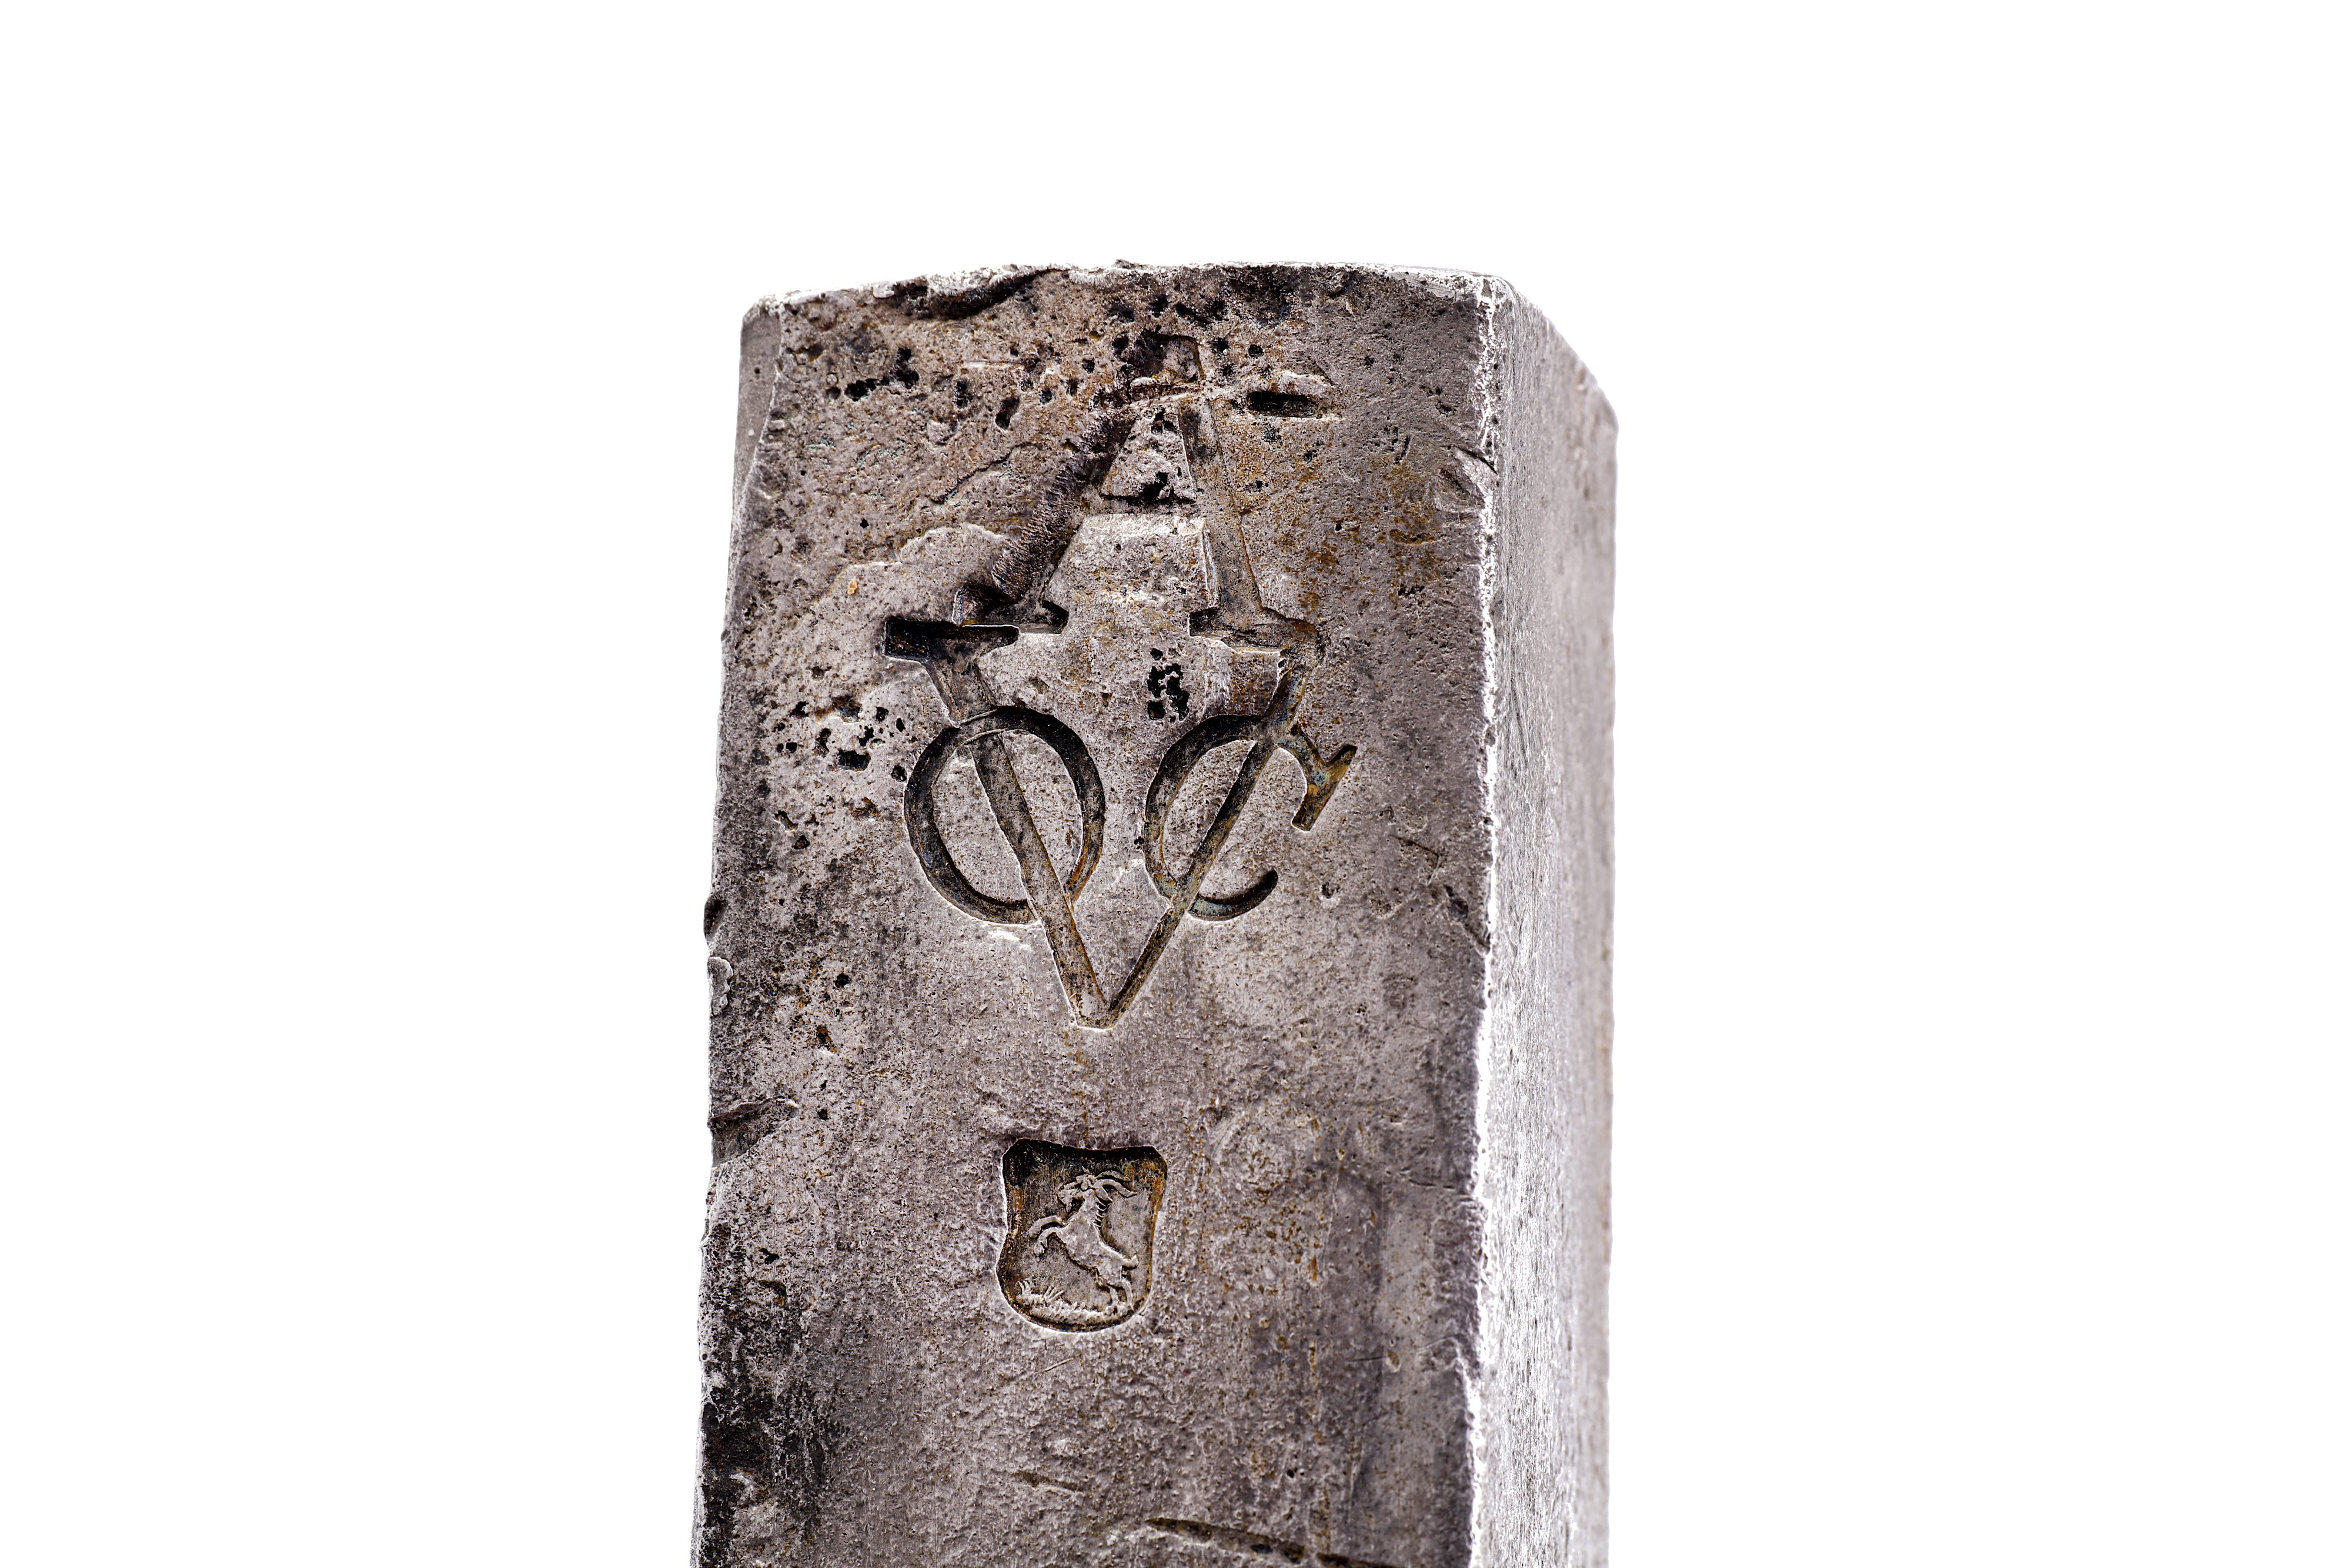 A DUTCH EAST INDIA COMPANY (V.O.C.) SILVER INGOT FROM THE ROOSWIJK CARGO STAMPED WITH THE MARK OF TH - Image 4 of 5